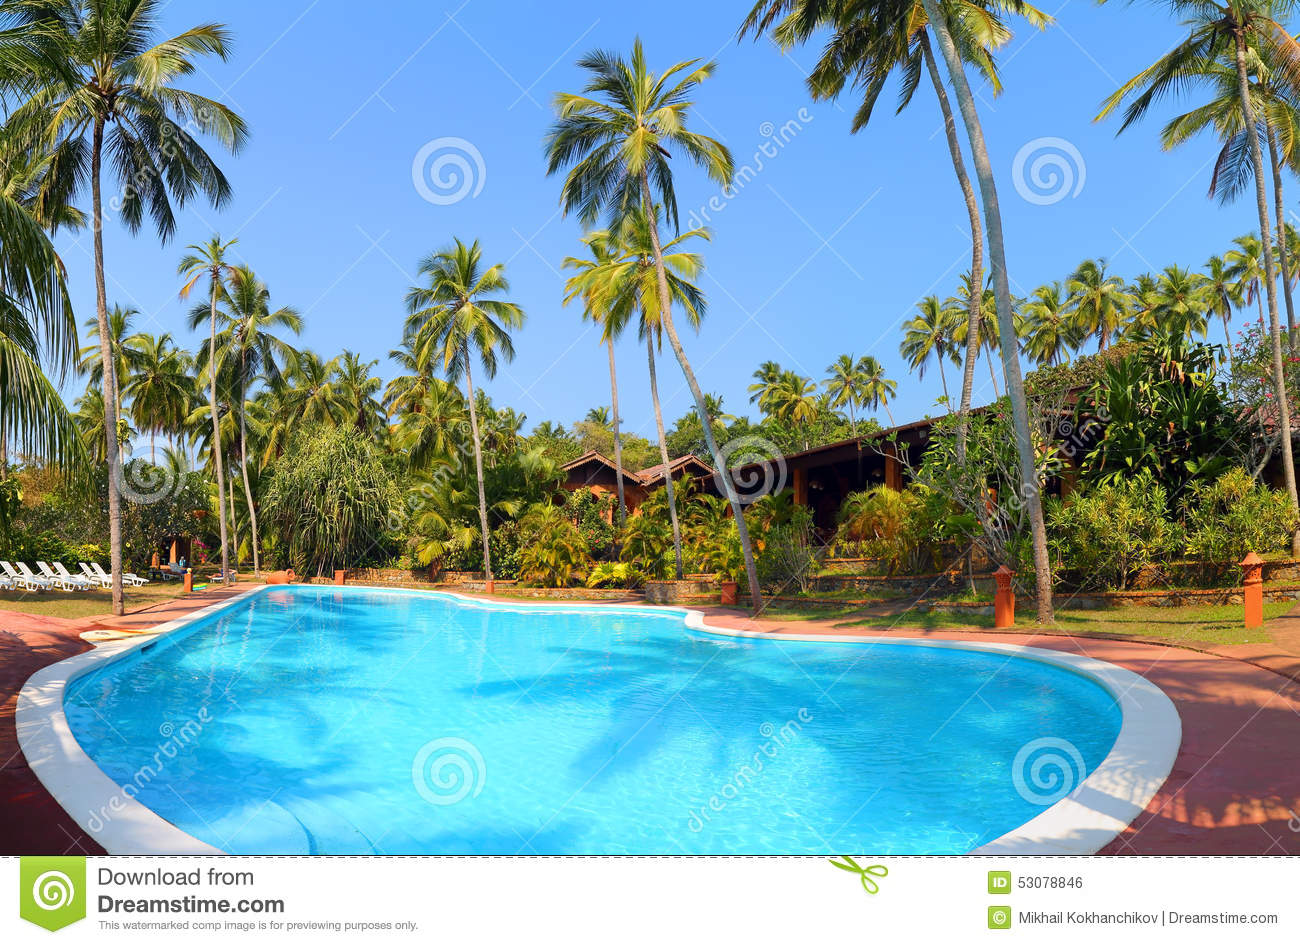 Swimming Pool With Palm Trees At Tropical Resort Stock Photo Image 53078846